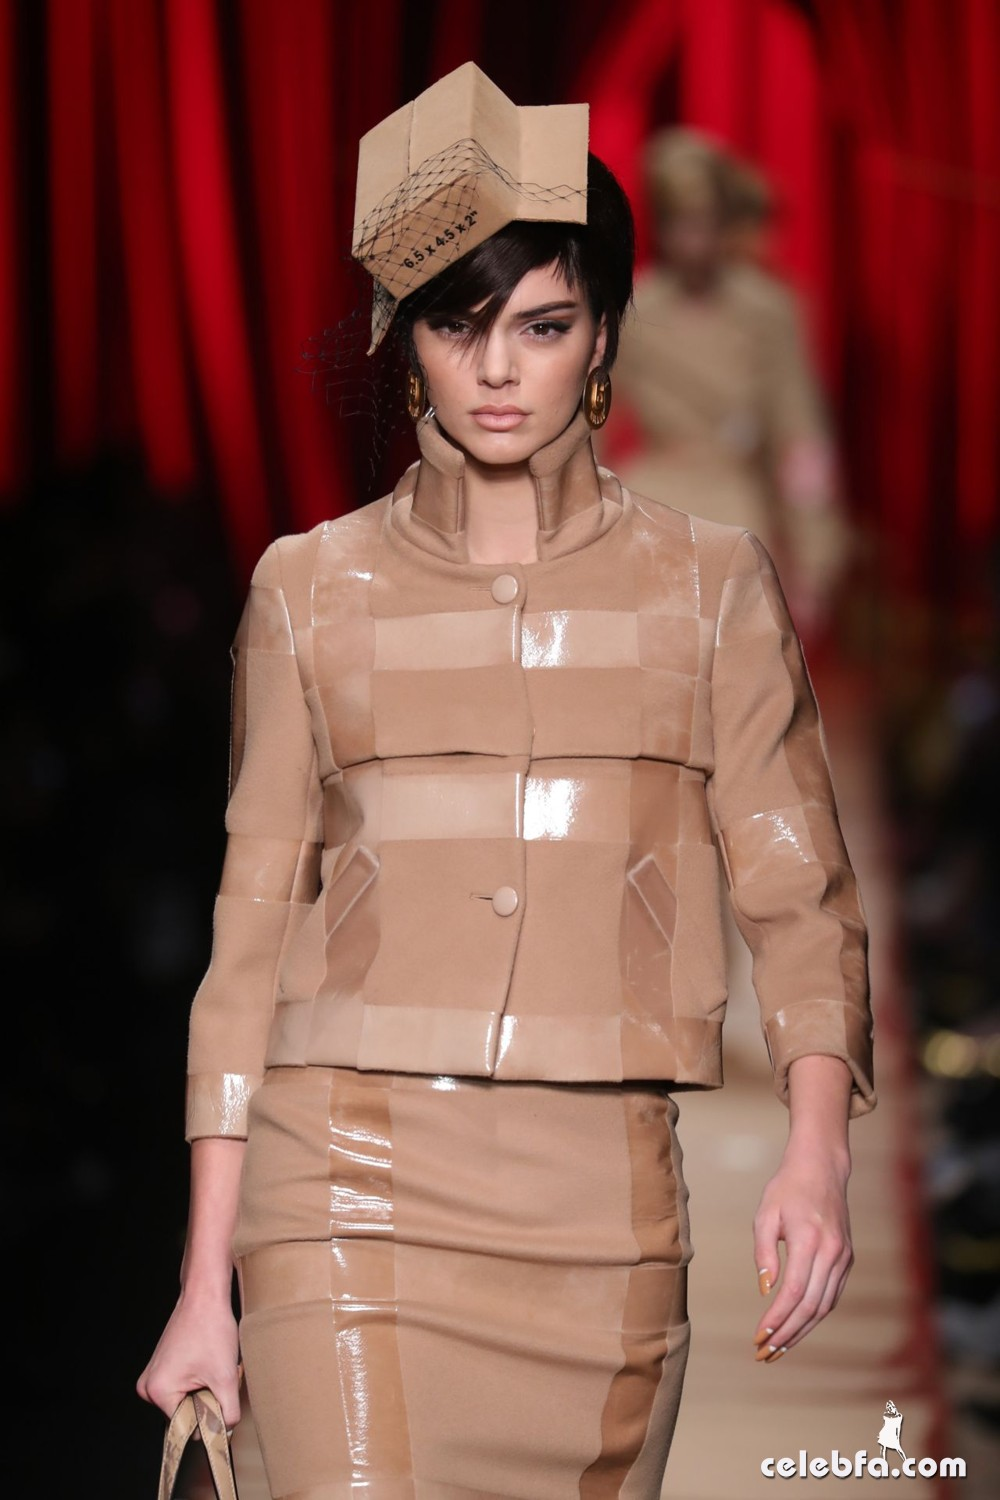 kendall-jenner-hit-the-catwalk-for-moschino-milan-fashion-week-2